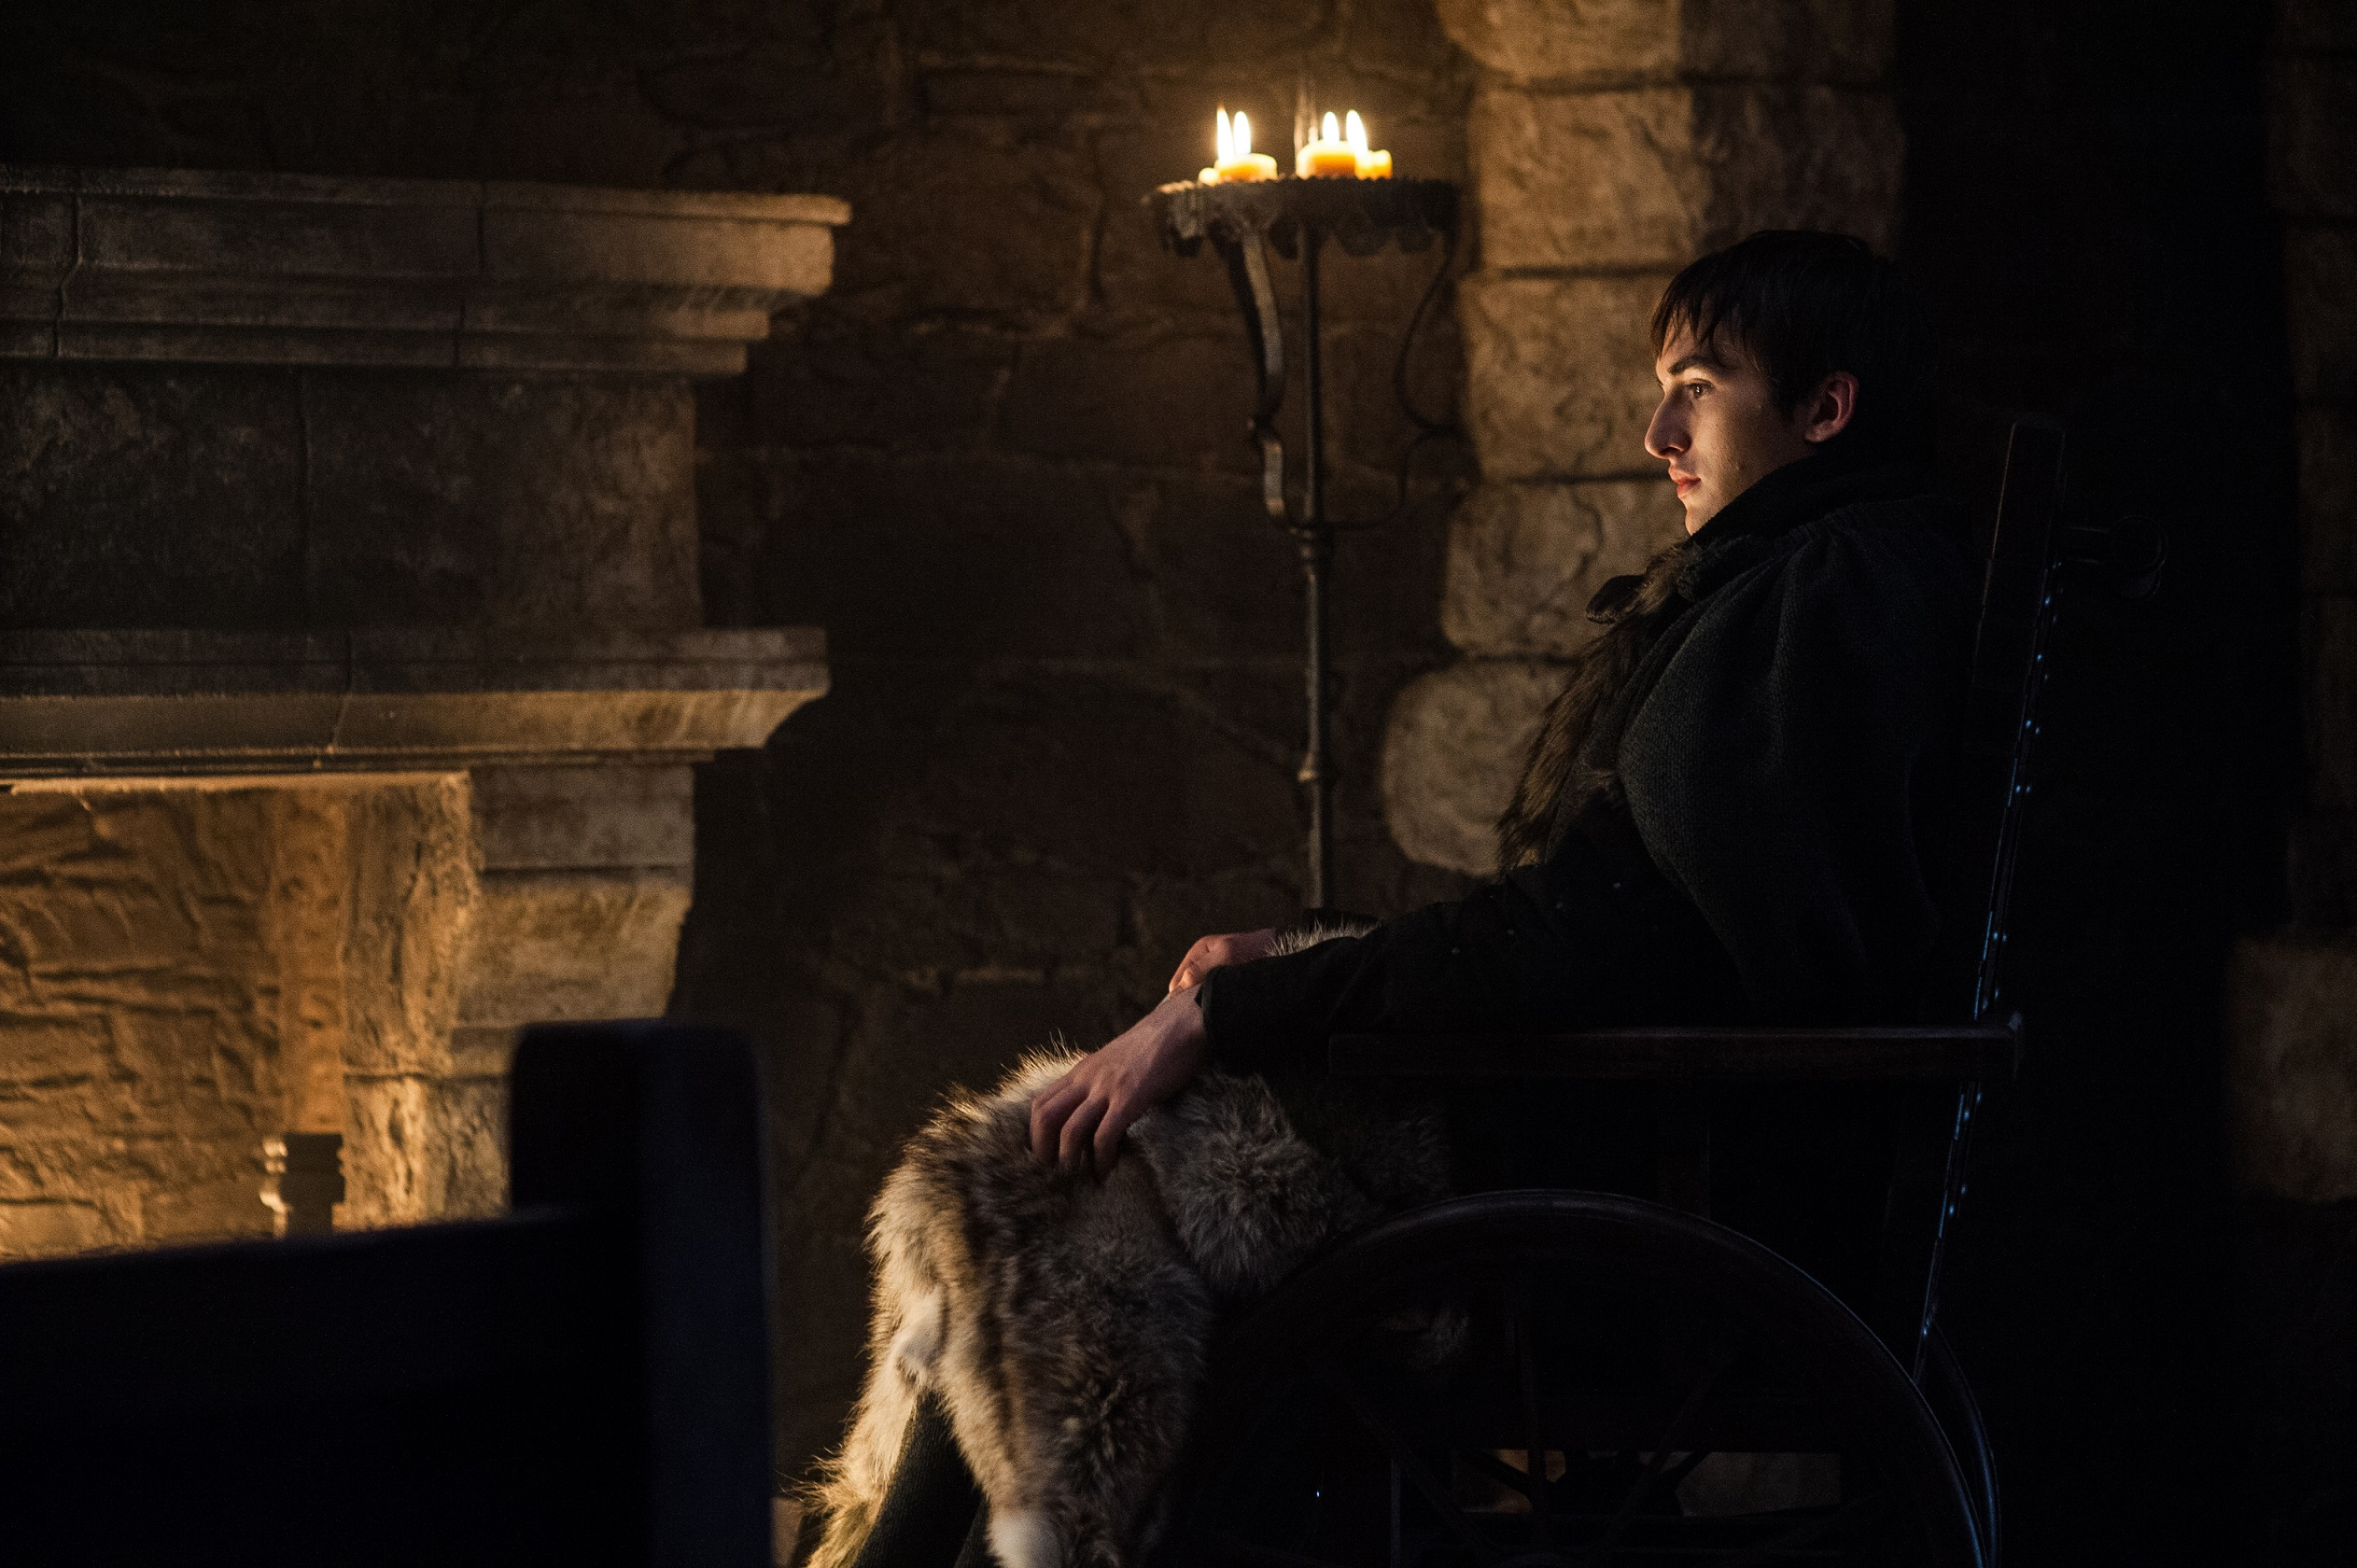 What else will Bran Stark discover in Season 8?